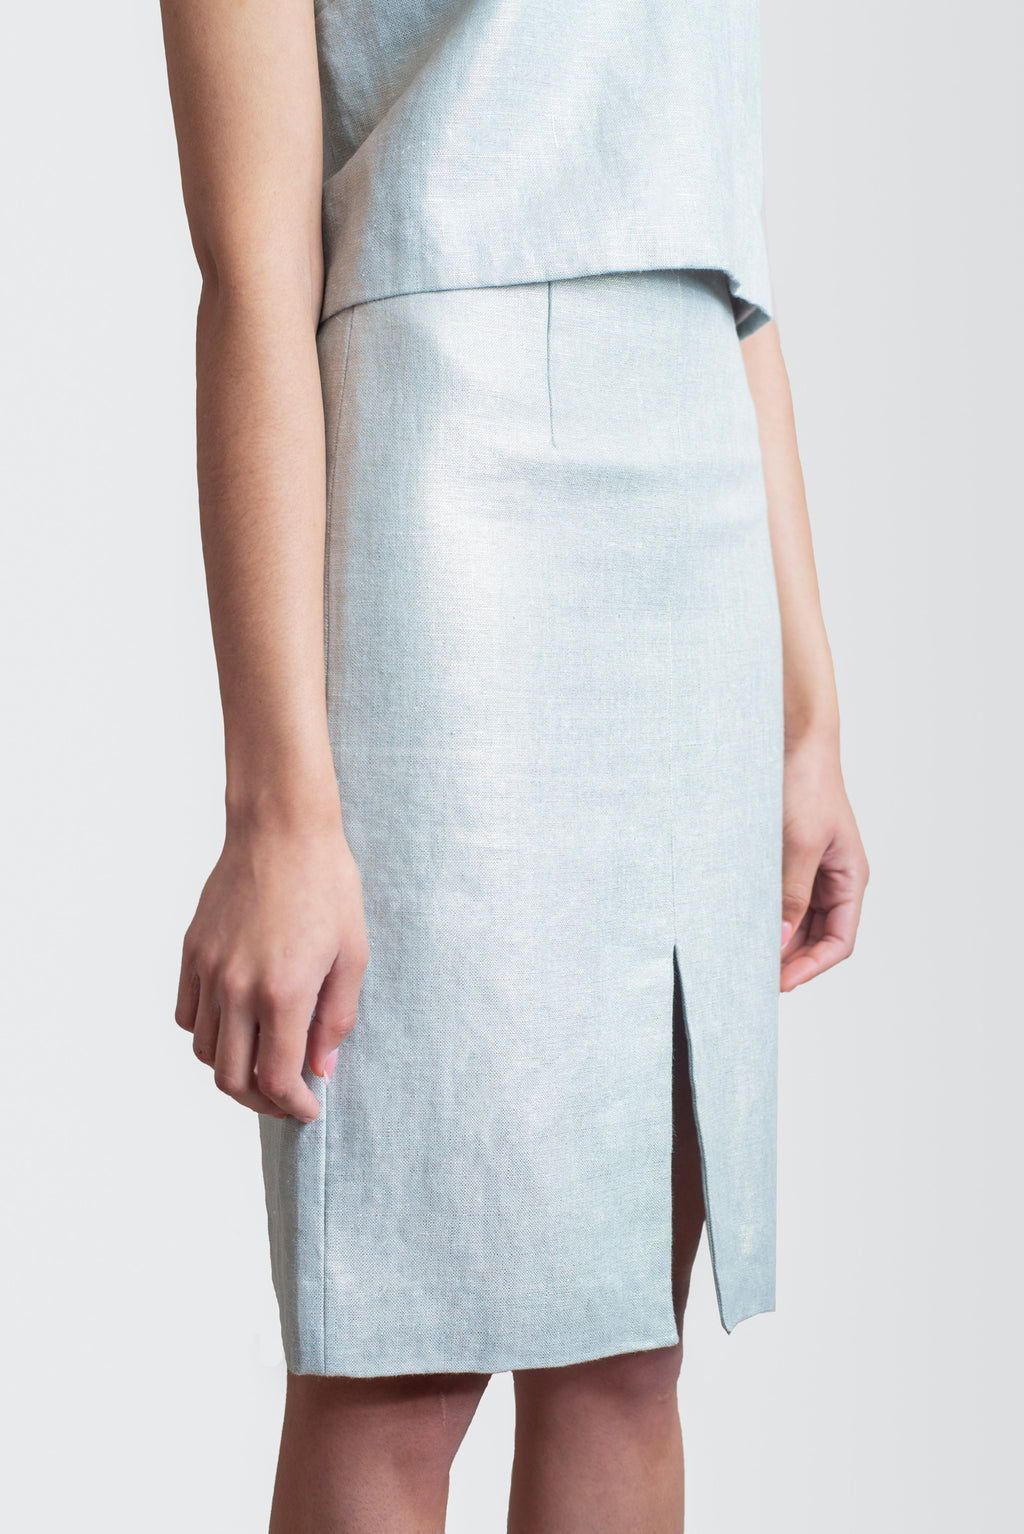 The Reverse Pencil Skirt